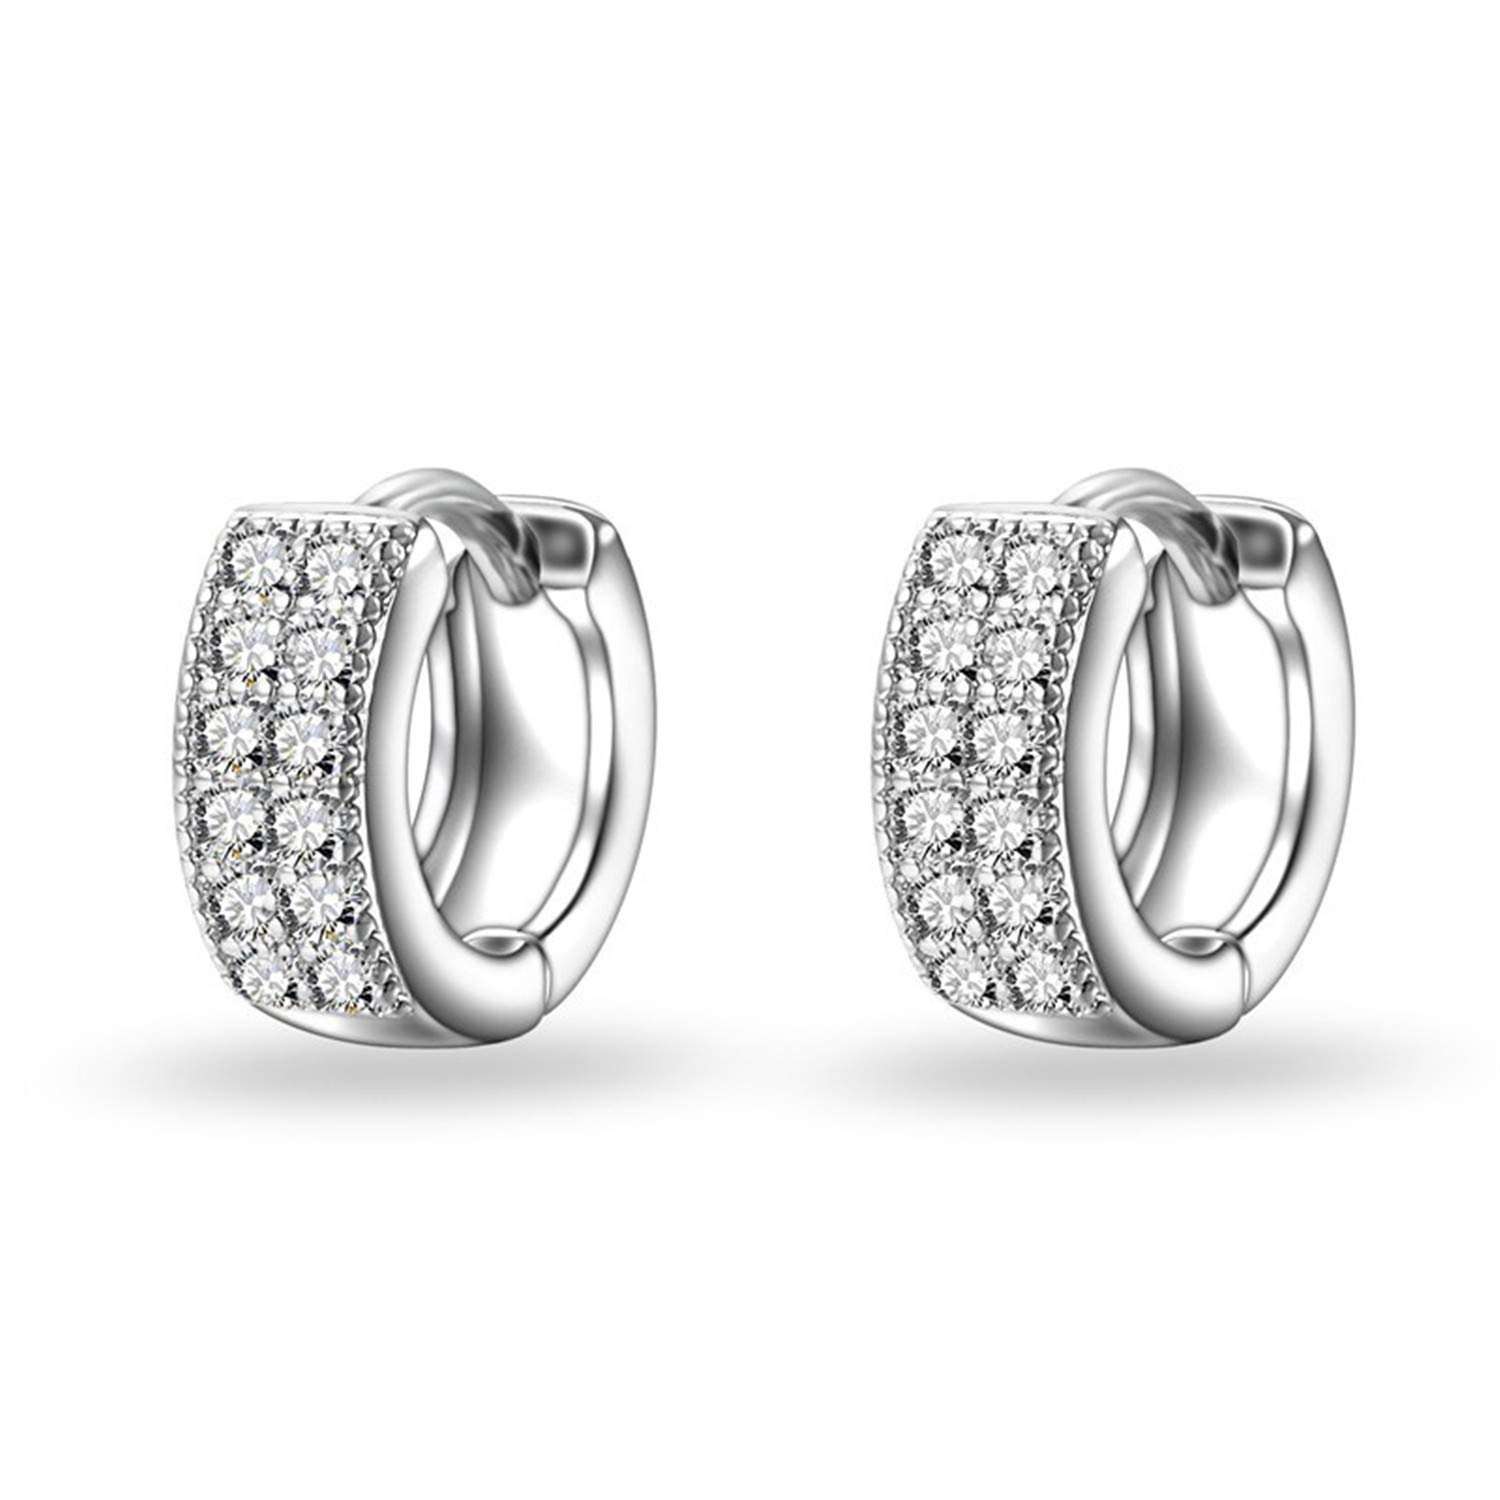 Zcaosma 925 Sterling Sliver Exquisite Women//Girls Stud Earrings Silver Fashion Jewelry Shiny White Crystal